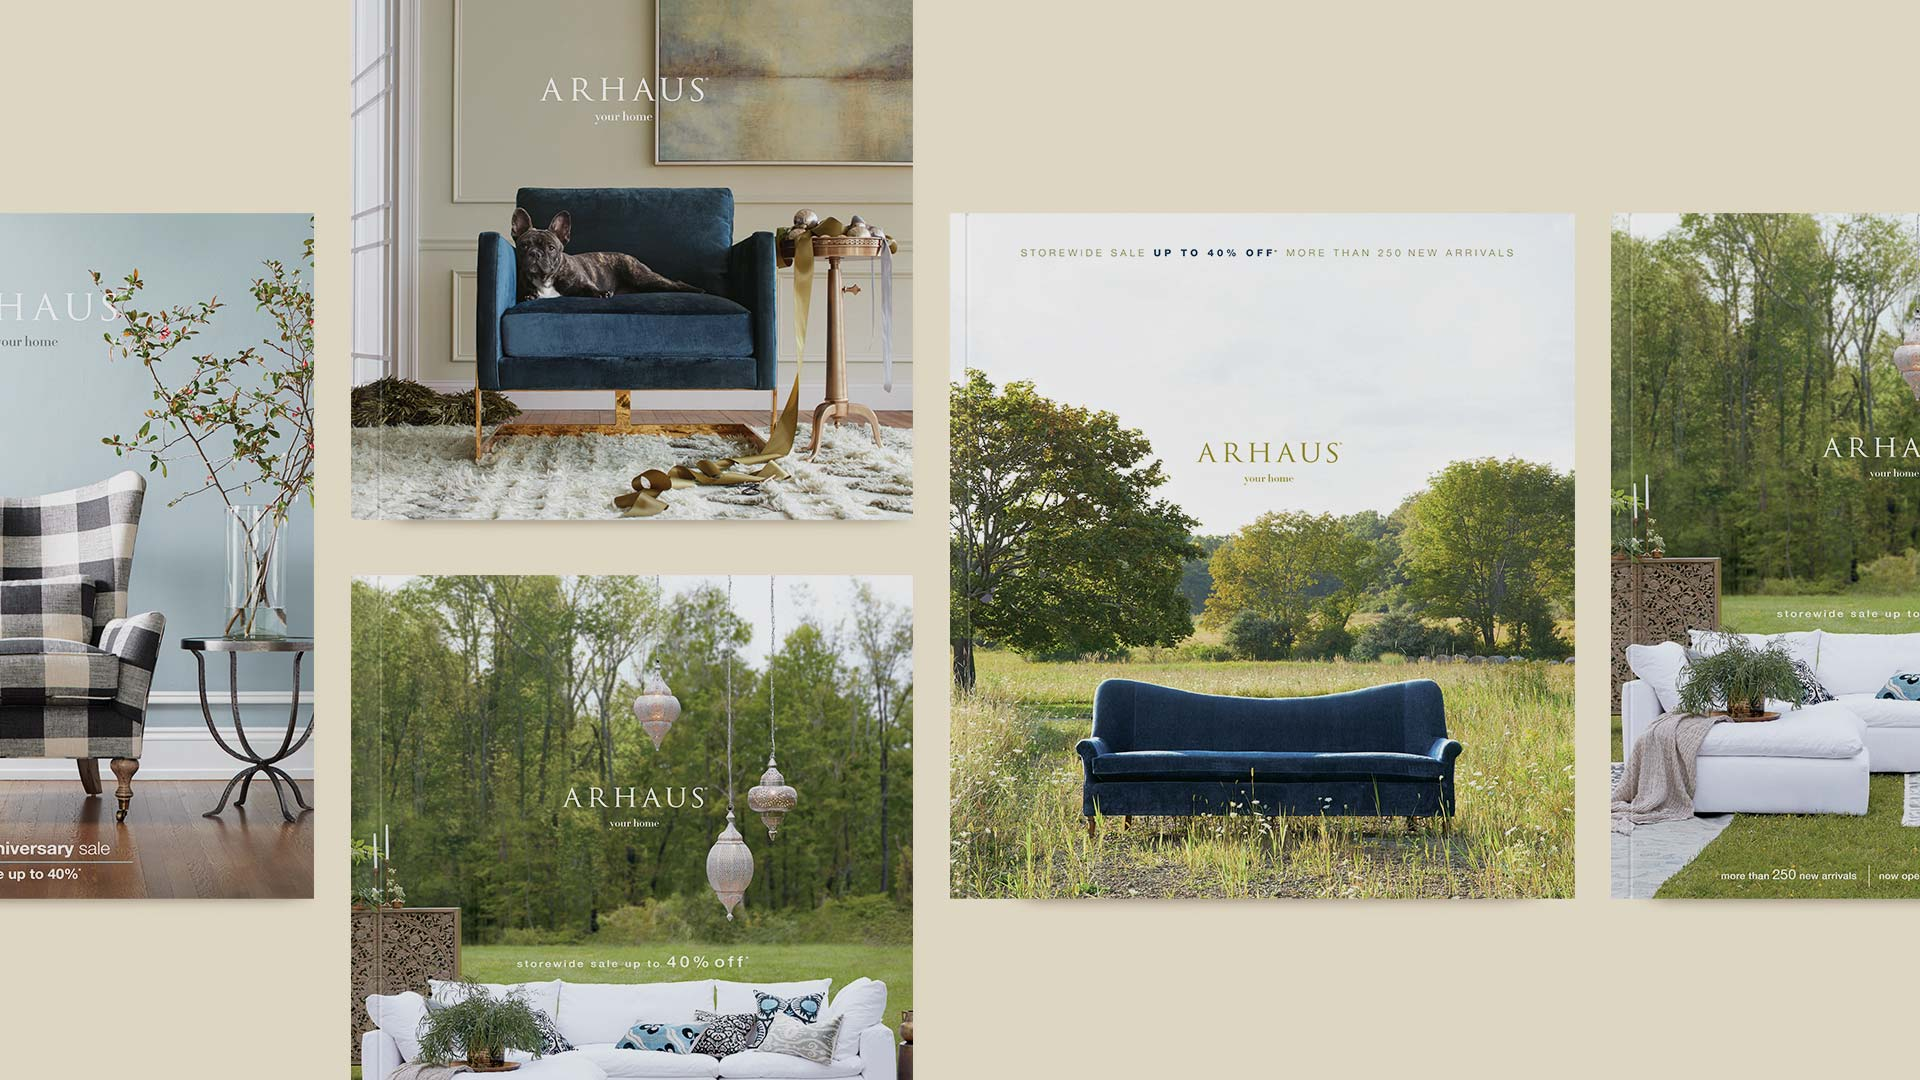 Arhaus Catalog Covers